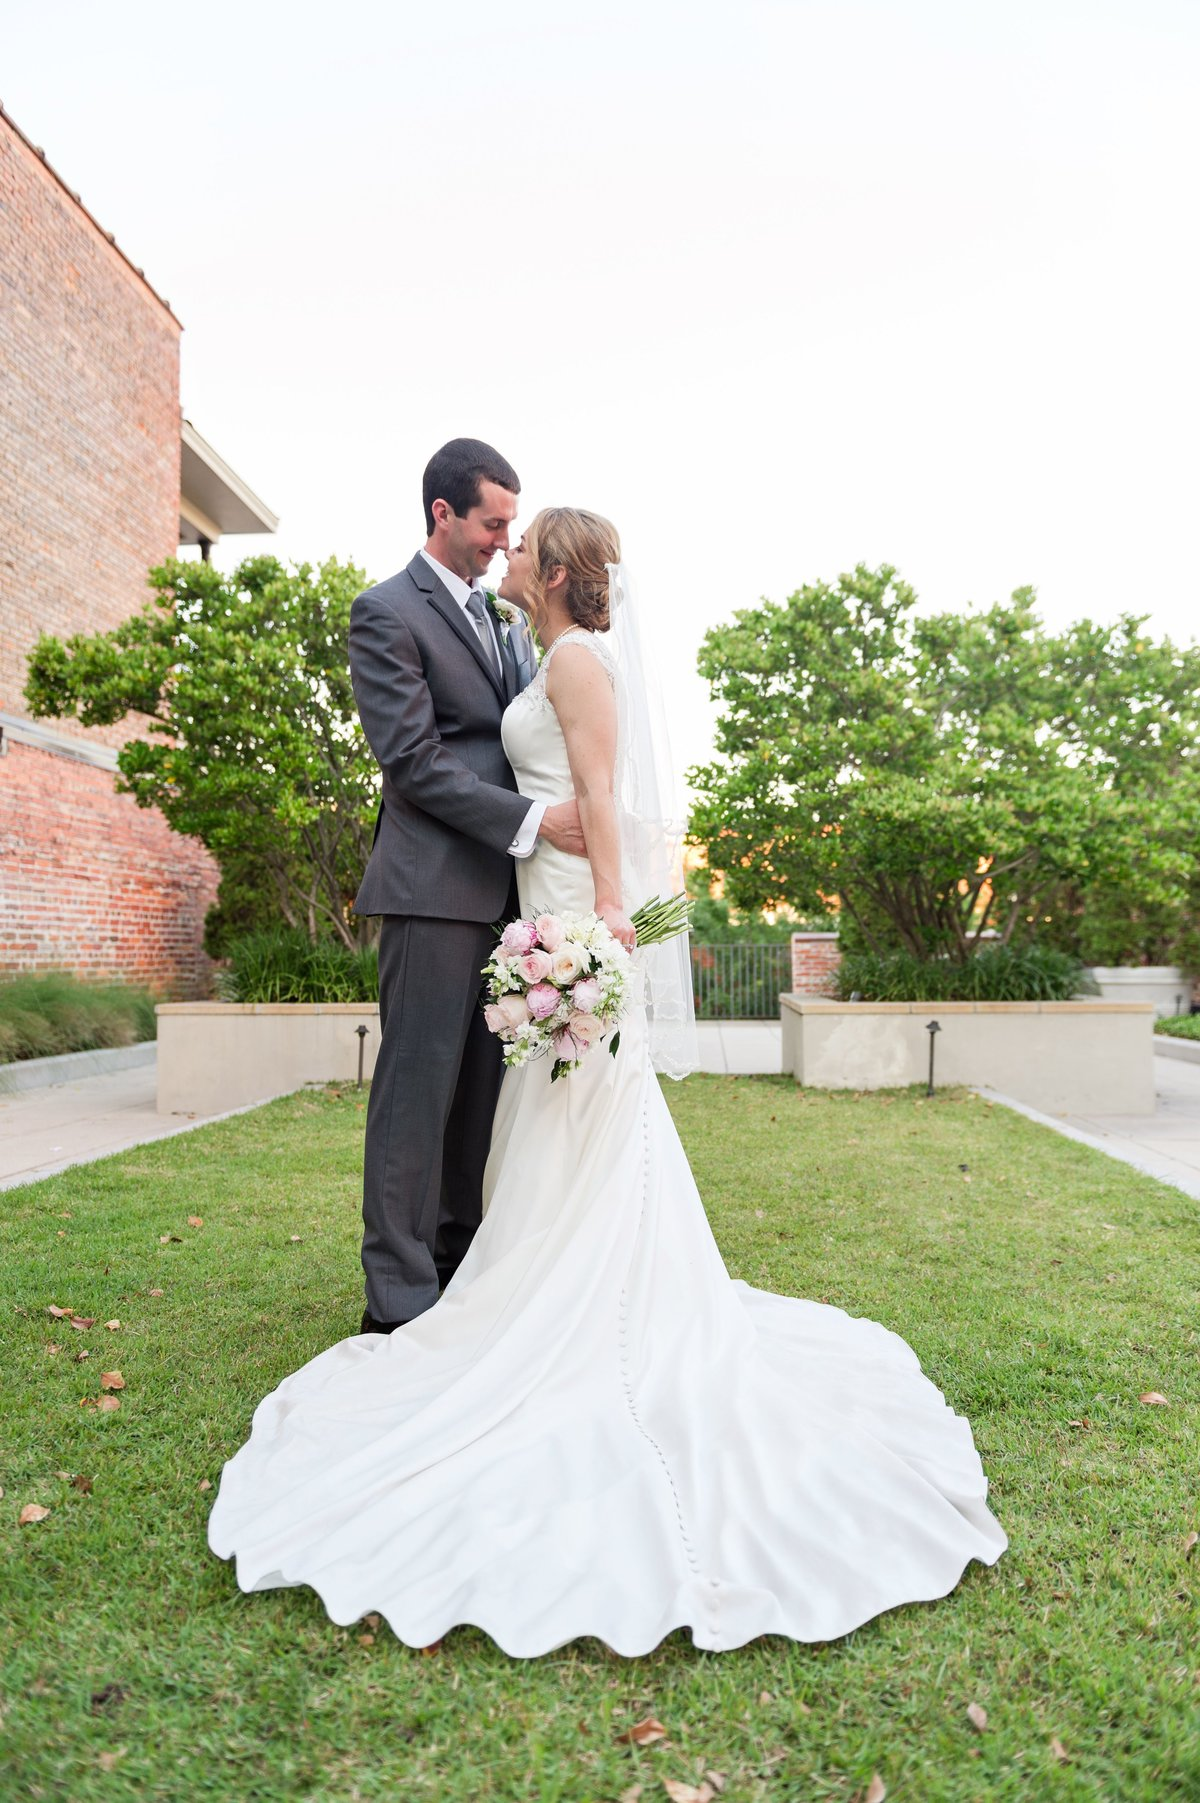 00017_Bride and Groom Gilliland Wedding Meredith Ryncarz Photography-30